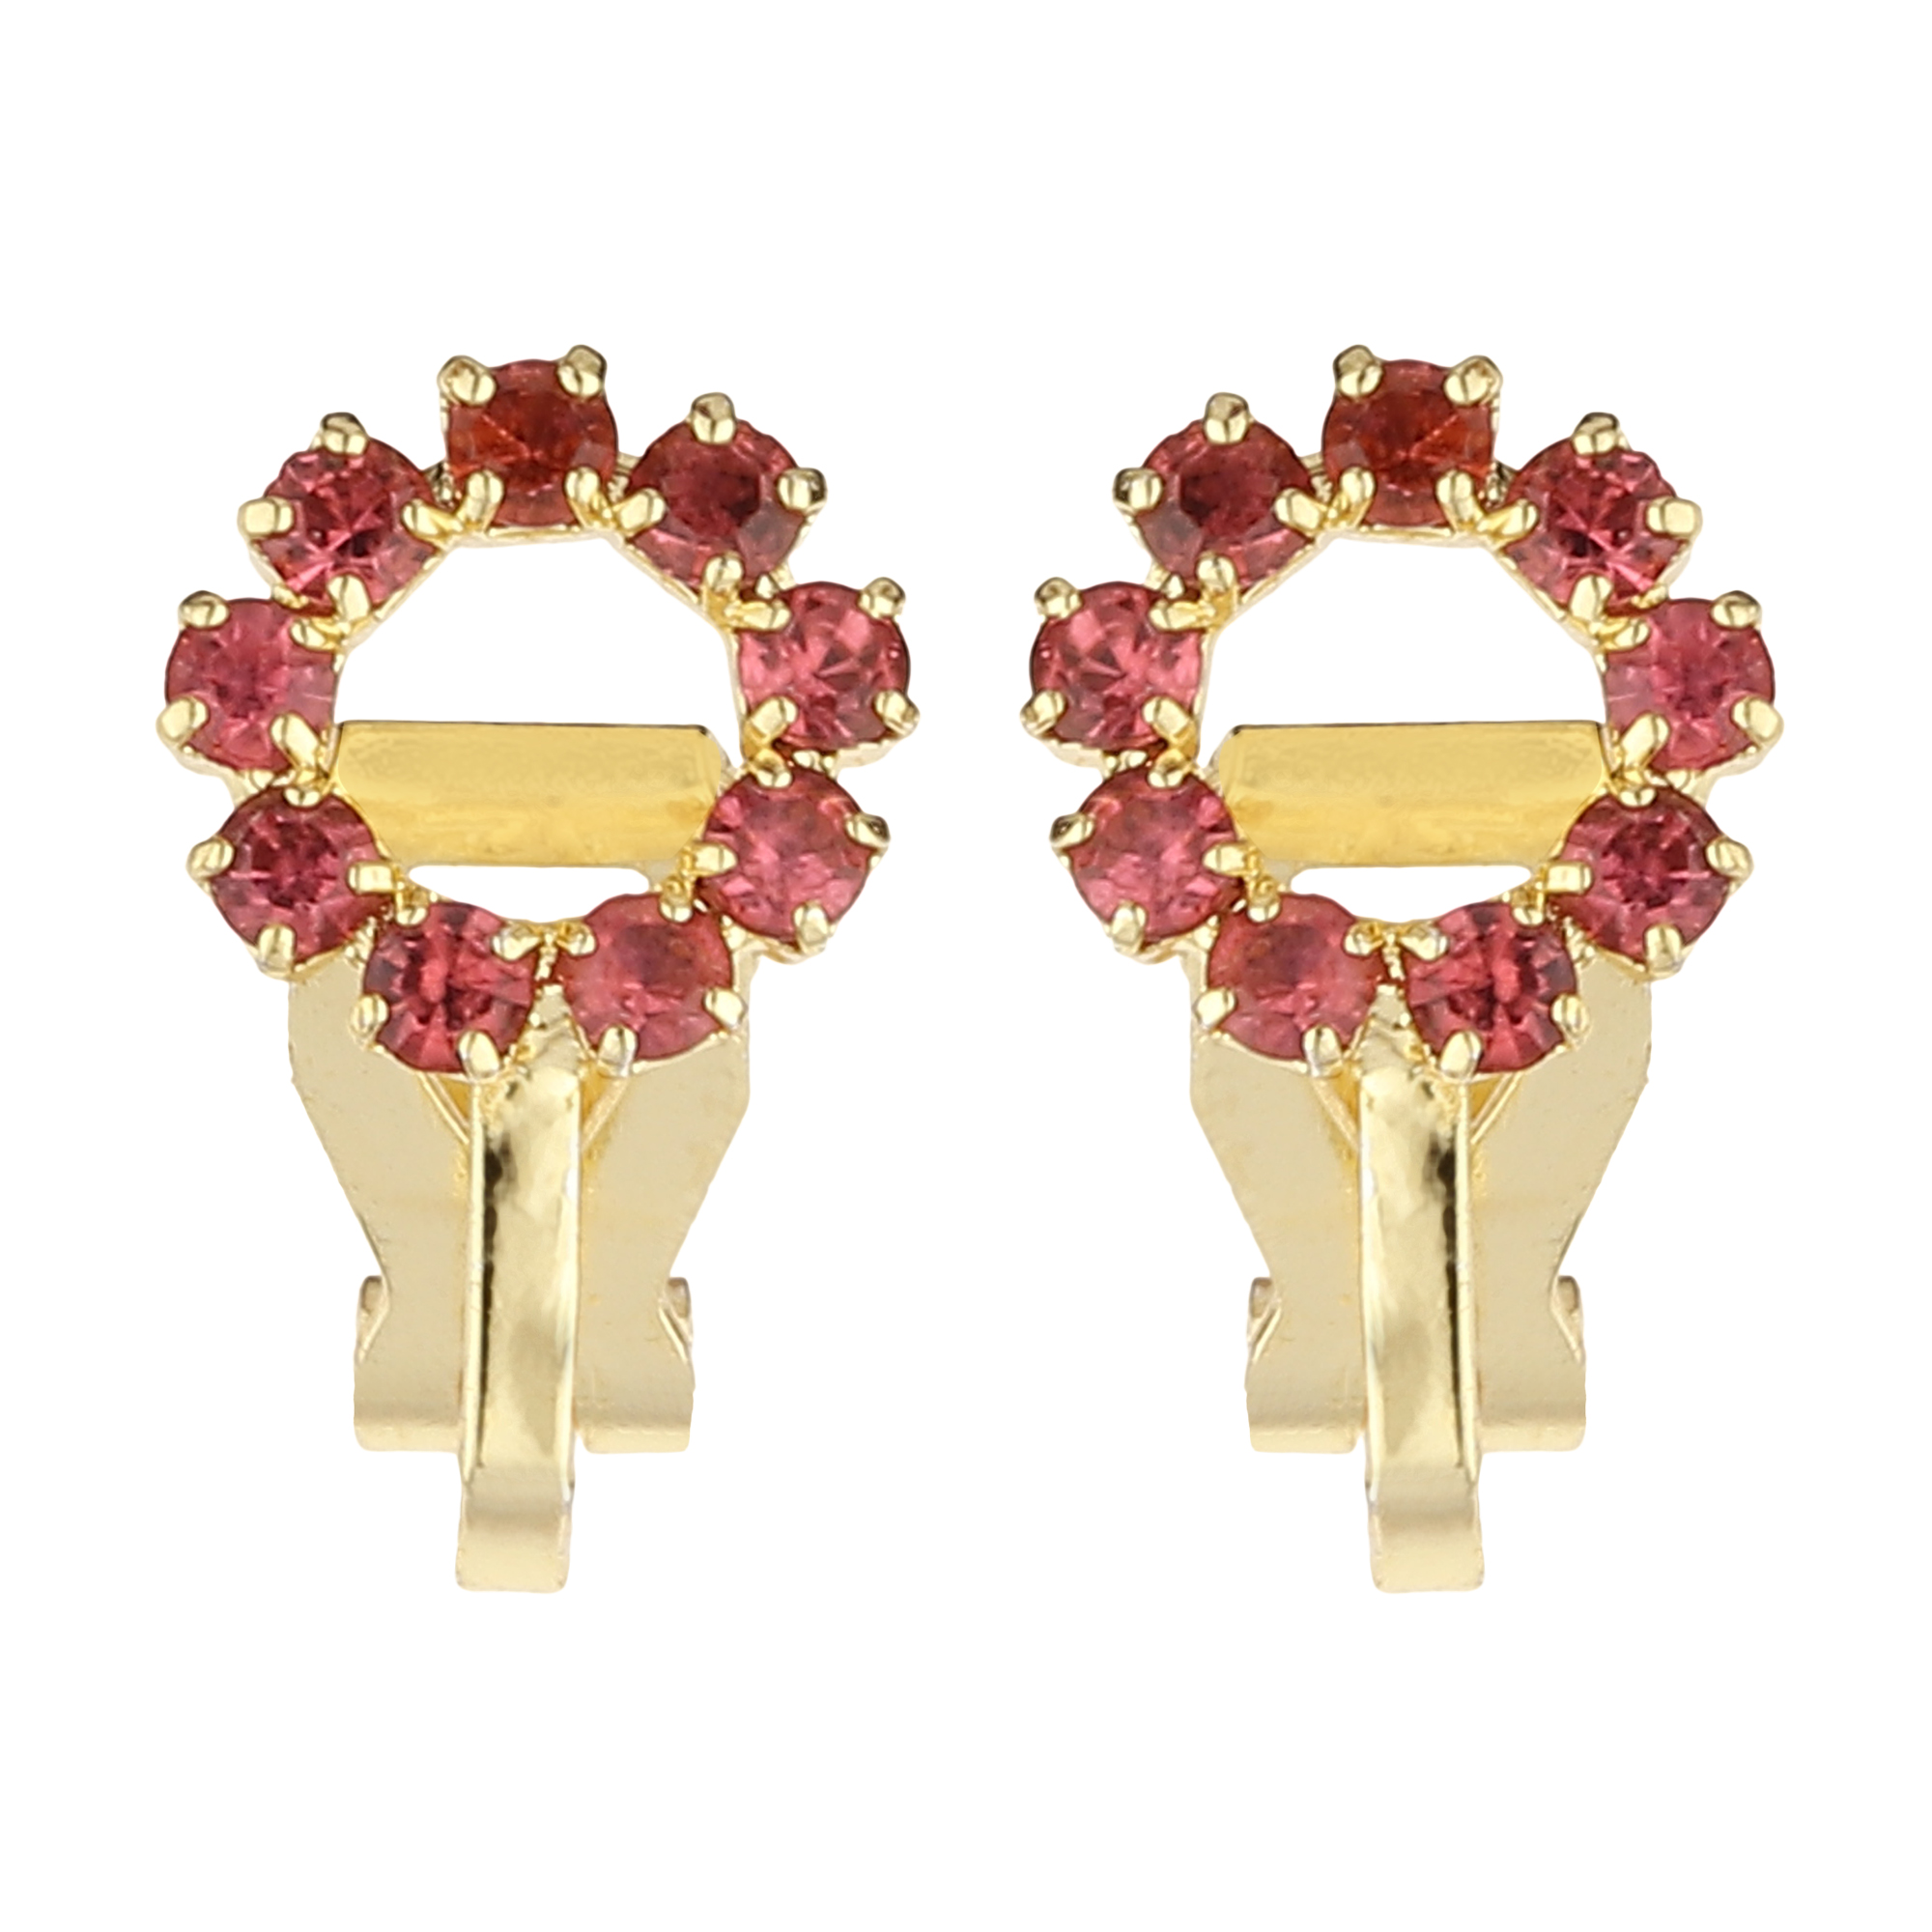 FirstBlush   FirstBlush Clip On Earrings for Non Piearced Ears for Women & Girls; Plating: Gold; Color: Blush (Pink); Size: 10 X 10mm; Wt.: 3gm. (MIEC104M130)